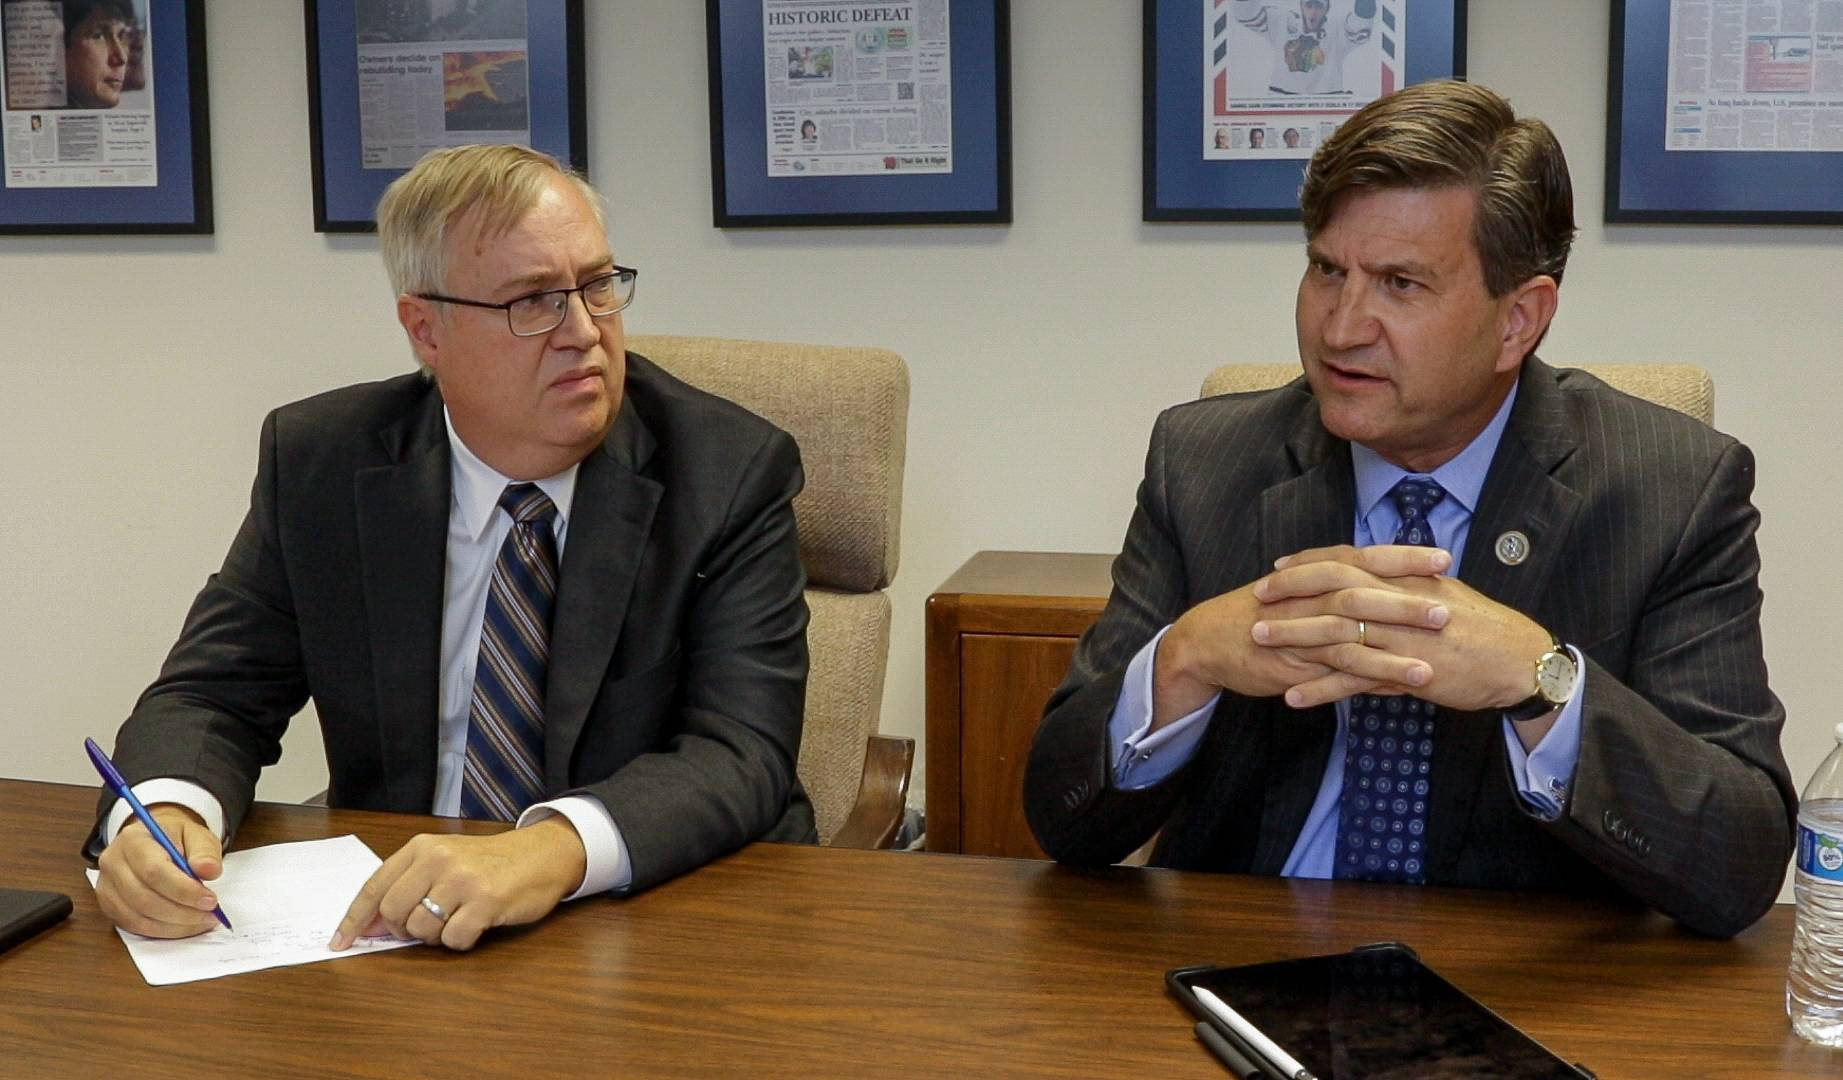 Republican challenger Doug Bennett, left, and Democratic U.S. Rep. Brad Schneider talked with the Daily Herald about immigration and other issues. They're running for Congress in Illinois' 10th District.